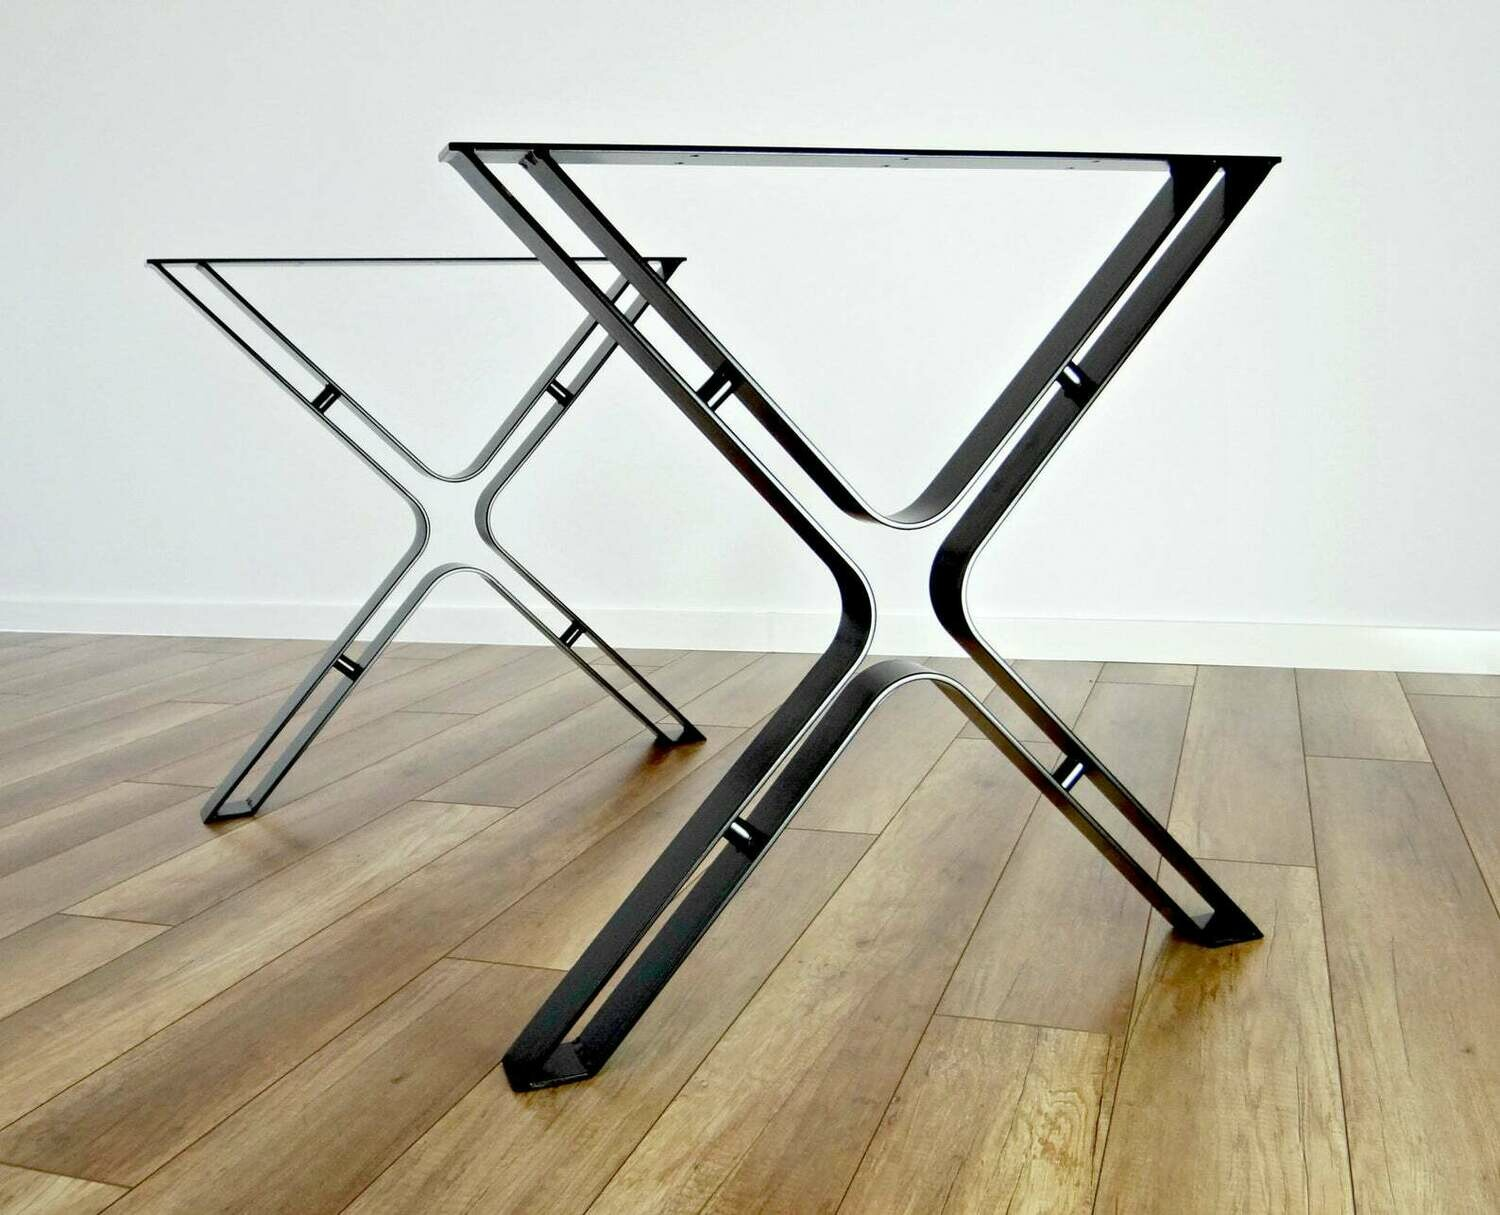 Metal Dining Table Legs (set of 2). Steel Hairpin Table Legs, Bend Industrial Kitchen Table Legs, Wrought Iron Table Base